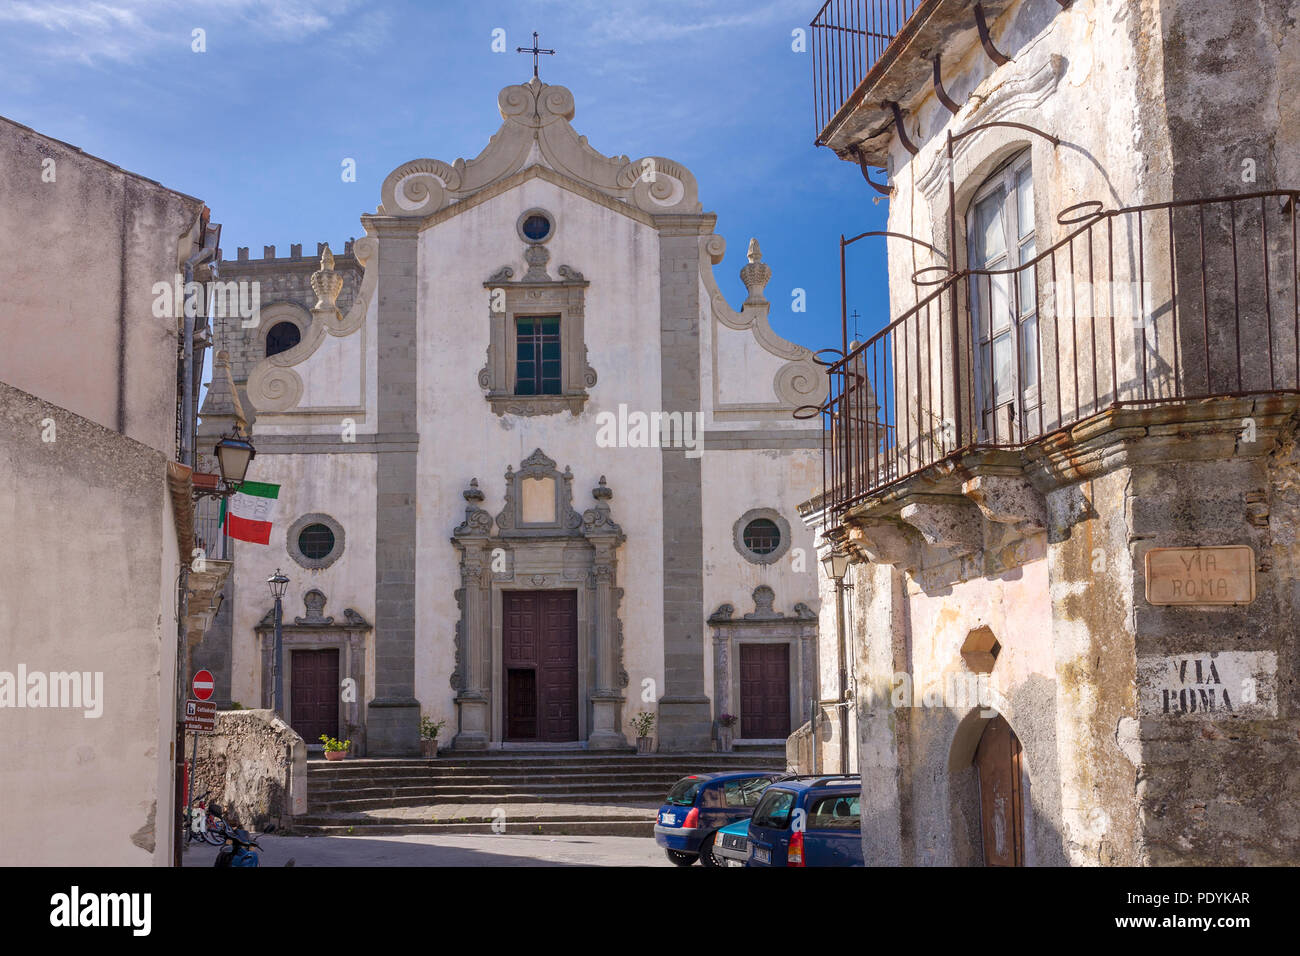 Madre di Forza D'Agro - Mother church in Forza d'Agro, made famous in the 'Godfather' movies, Forza d'Agro, Messina, Sicily, Italy - Stock Image